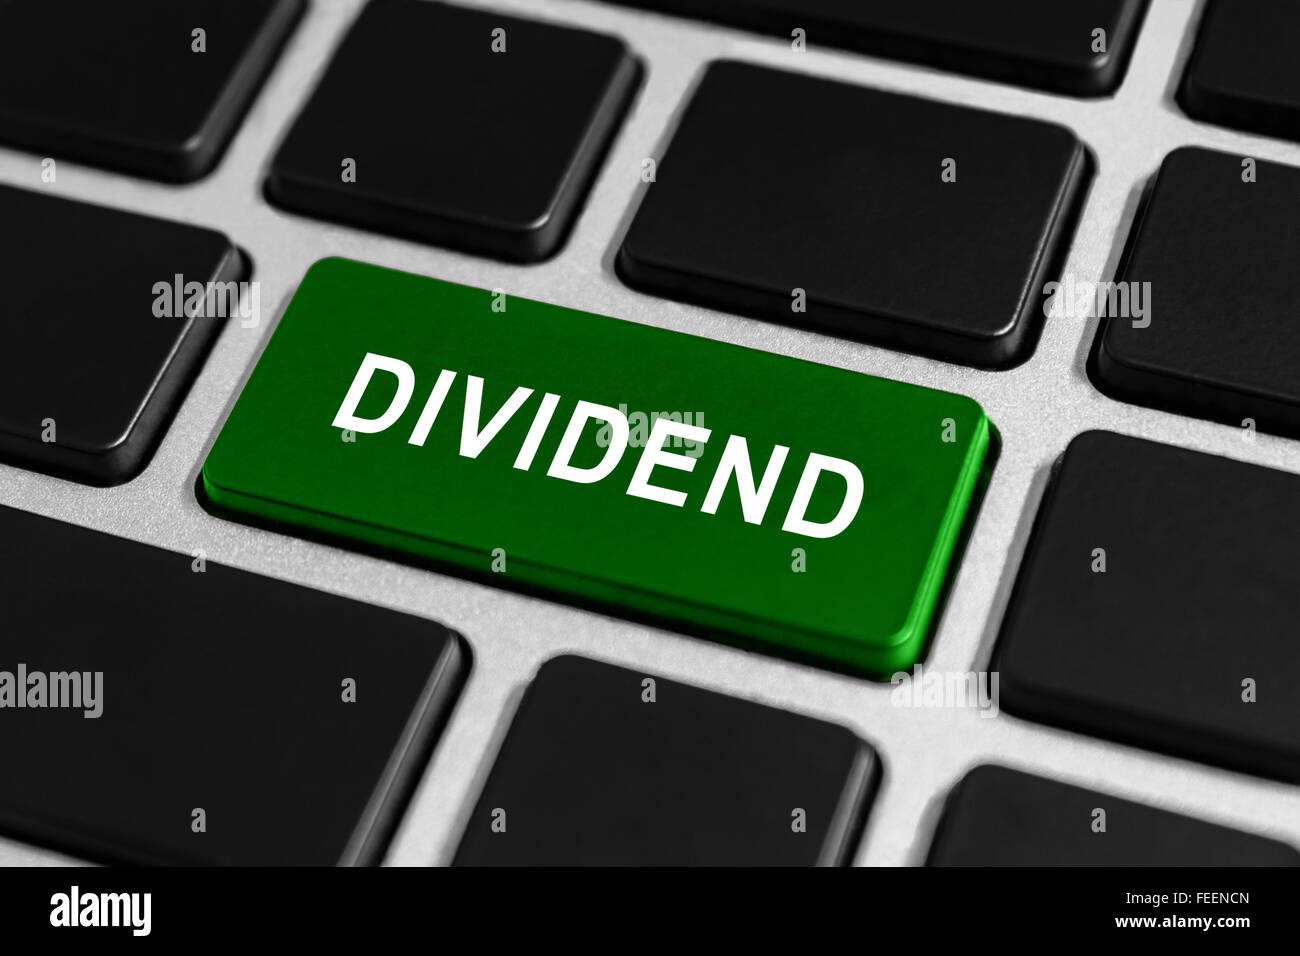 dividend green button on keyboard, business concept - Stock Image